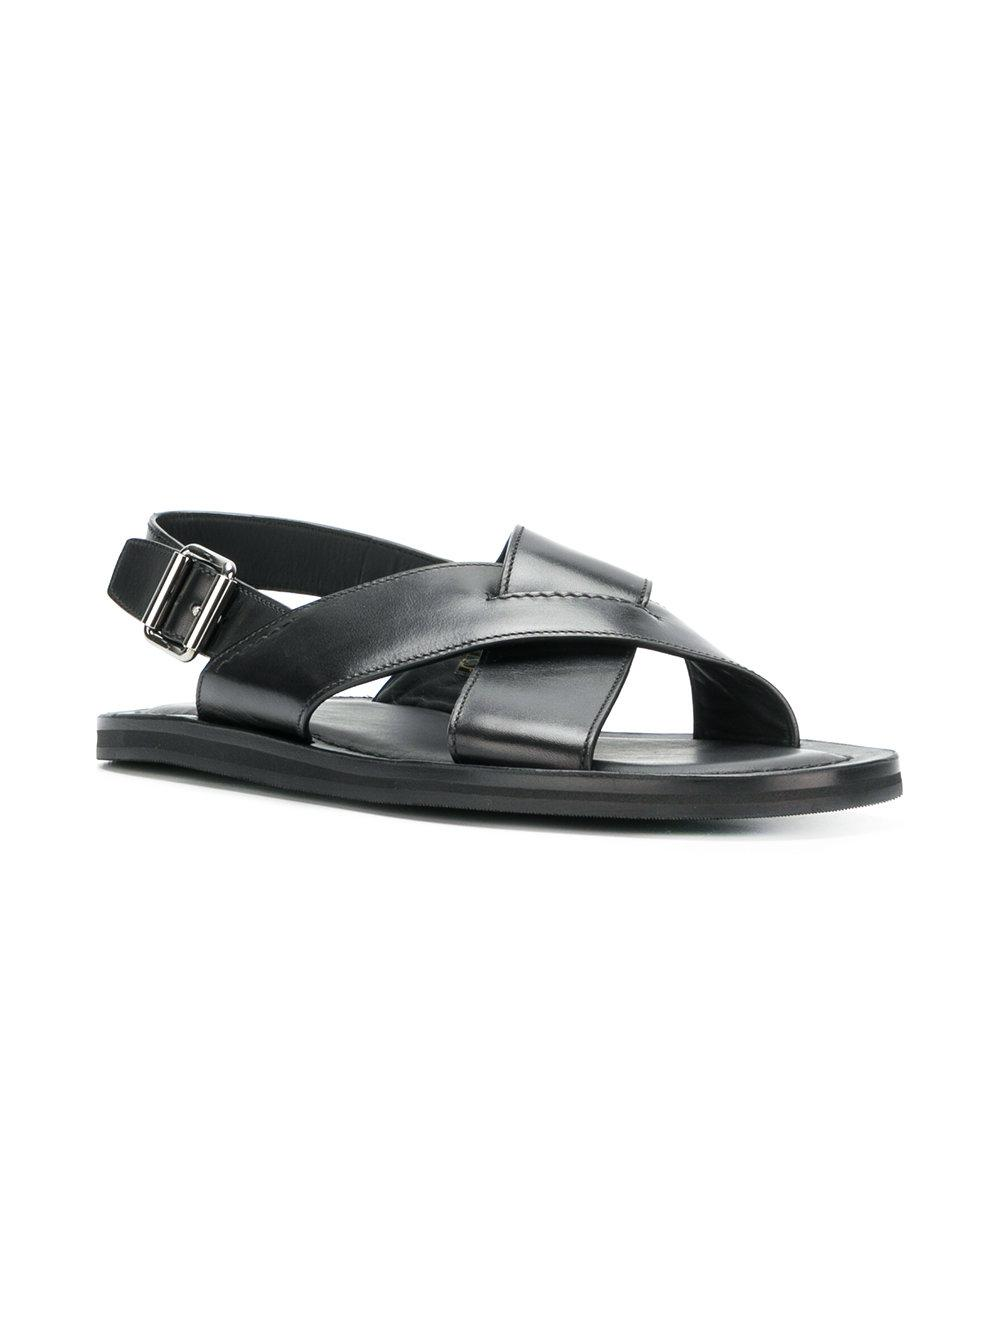 f303d4177b12 Church s - Black Crossover Strap Sandals for Men - Lyst. View fullscreen